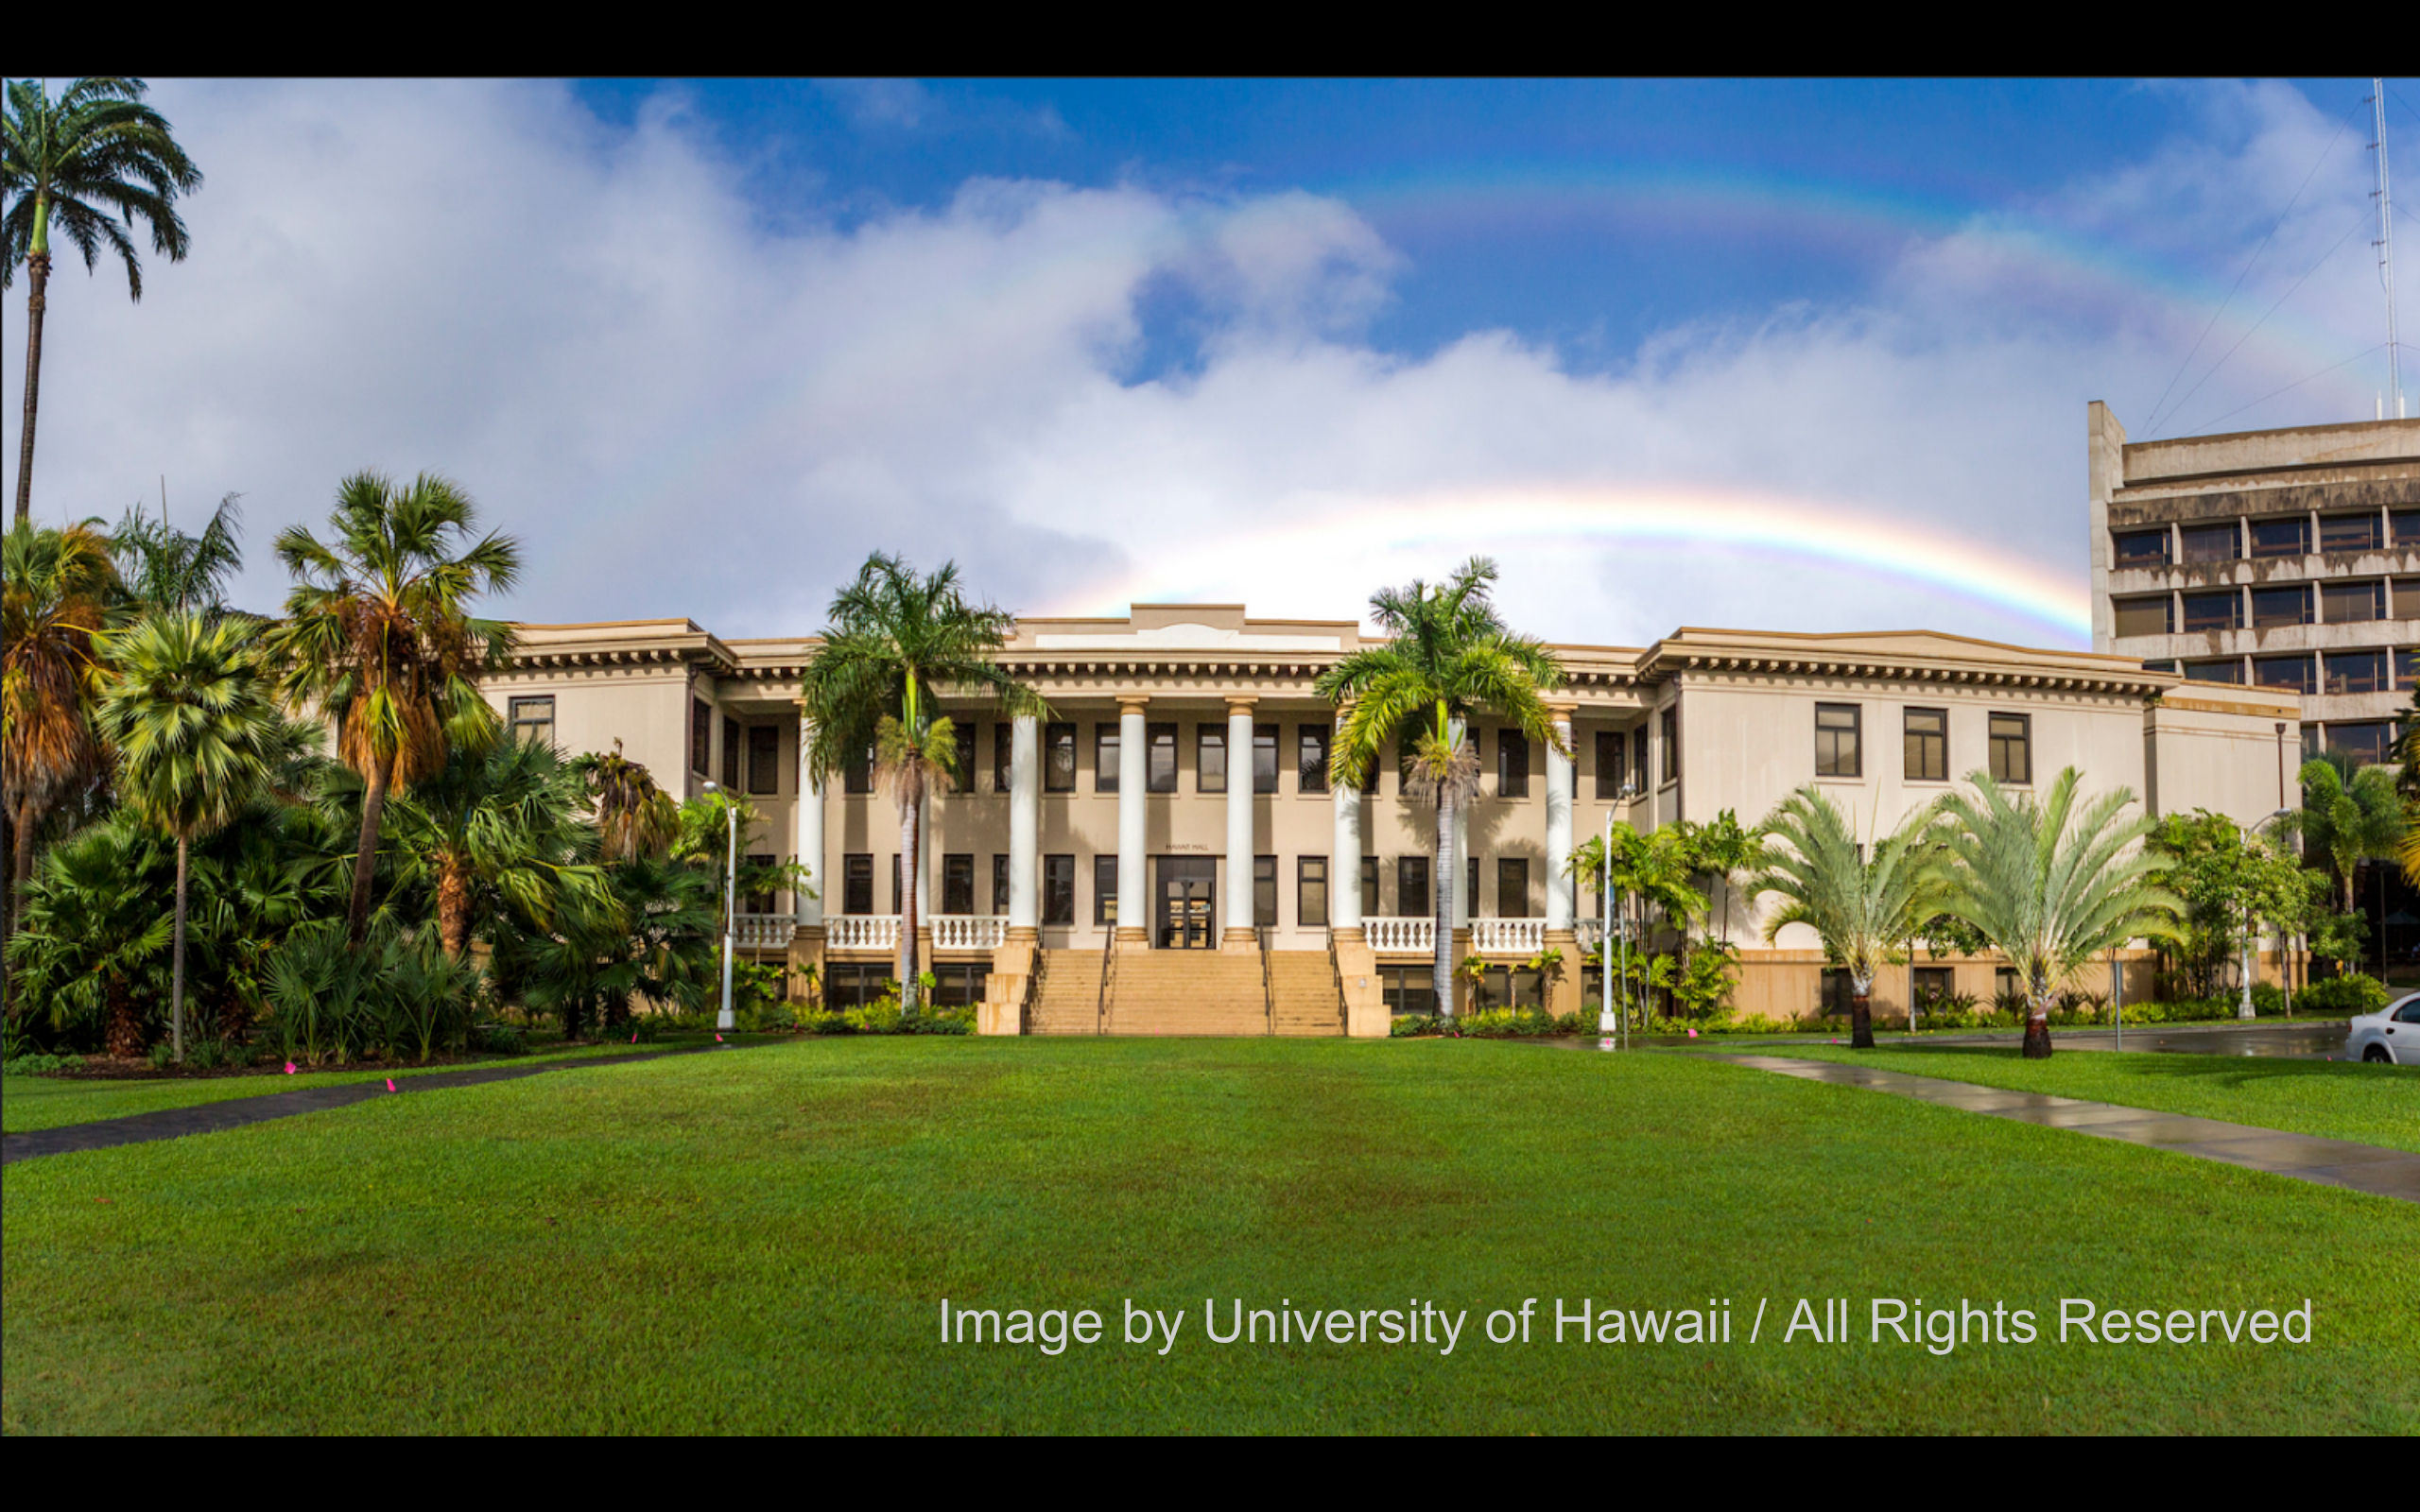 Hawaii Hall at UH Manoa